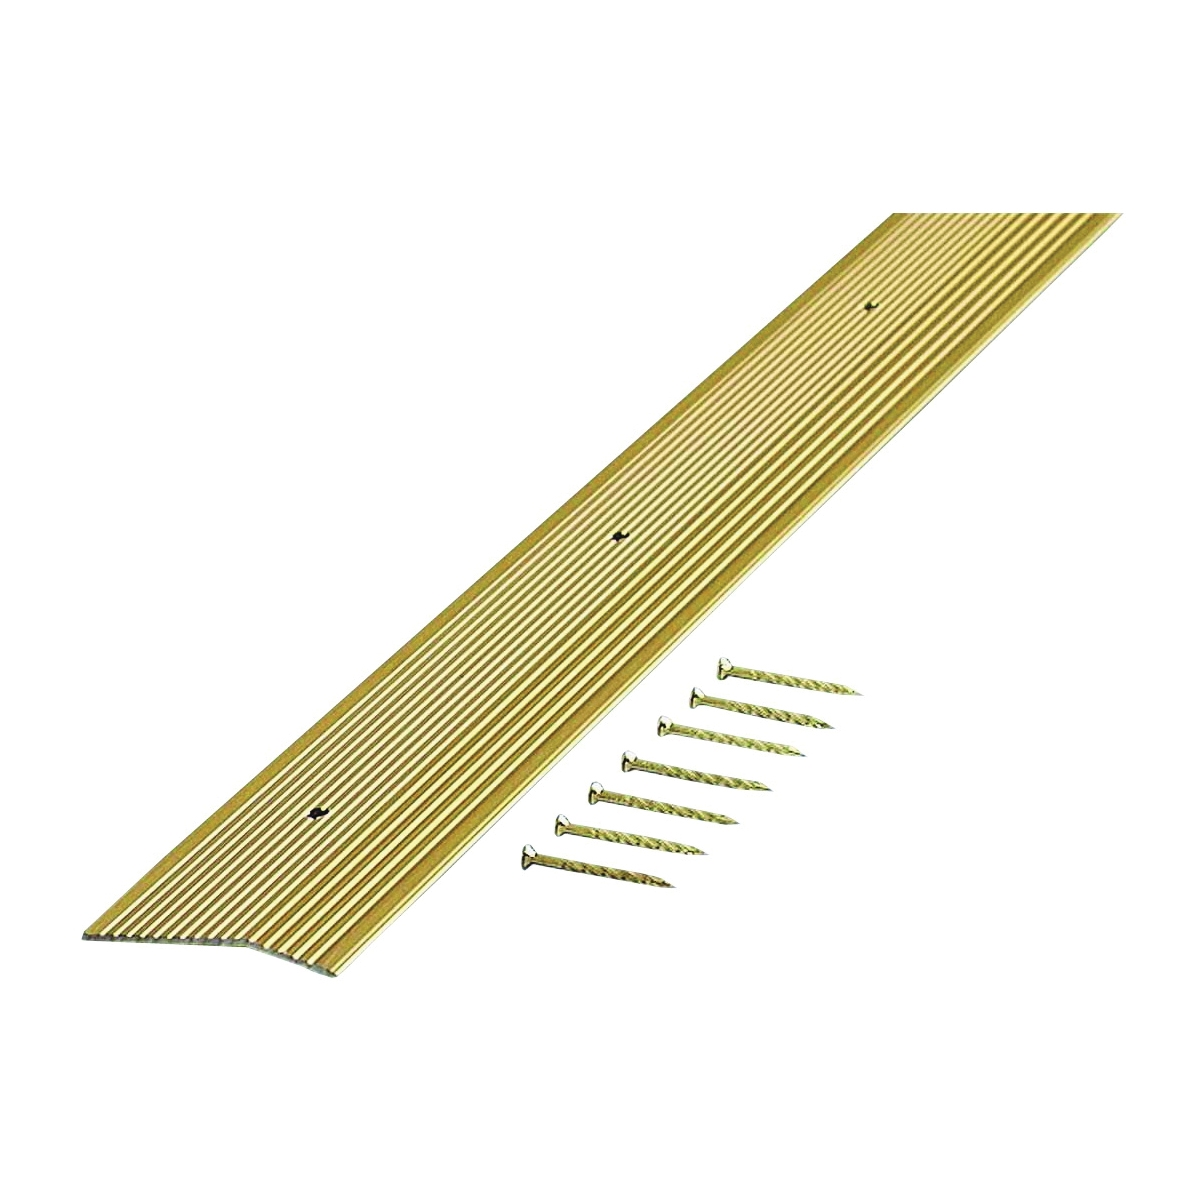 Picture of M-D 79251 Carpet Trim, 72 in L, 2 in W, Fluted Surface, Aluminum, Satin Brass